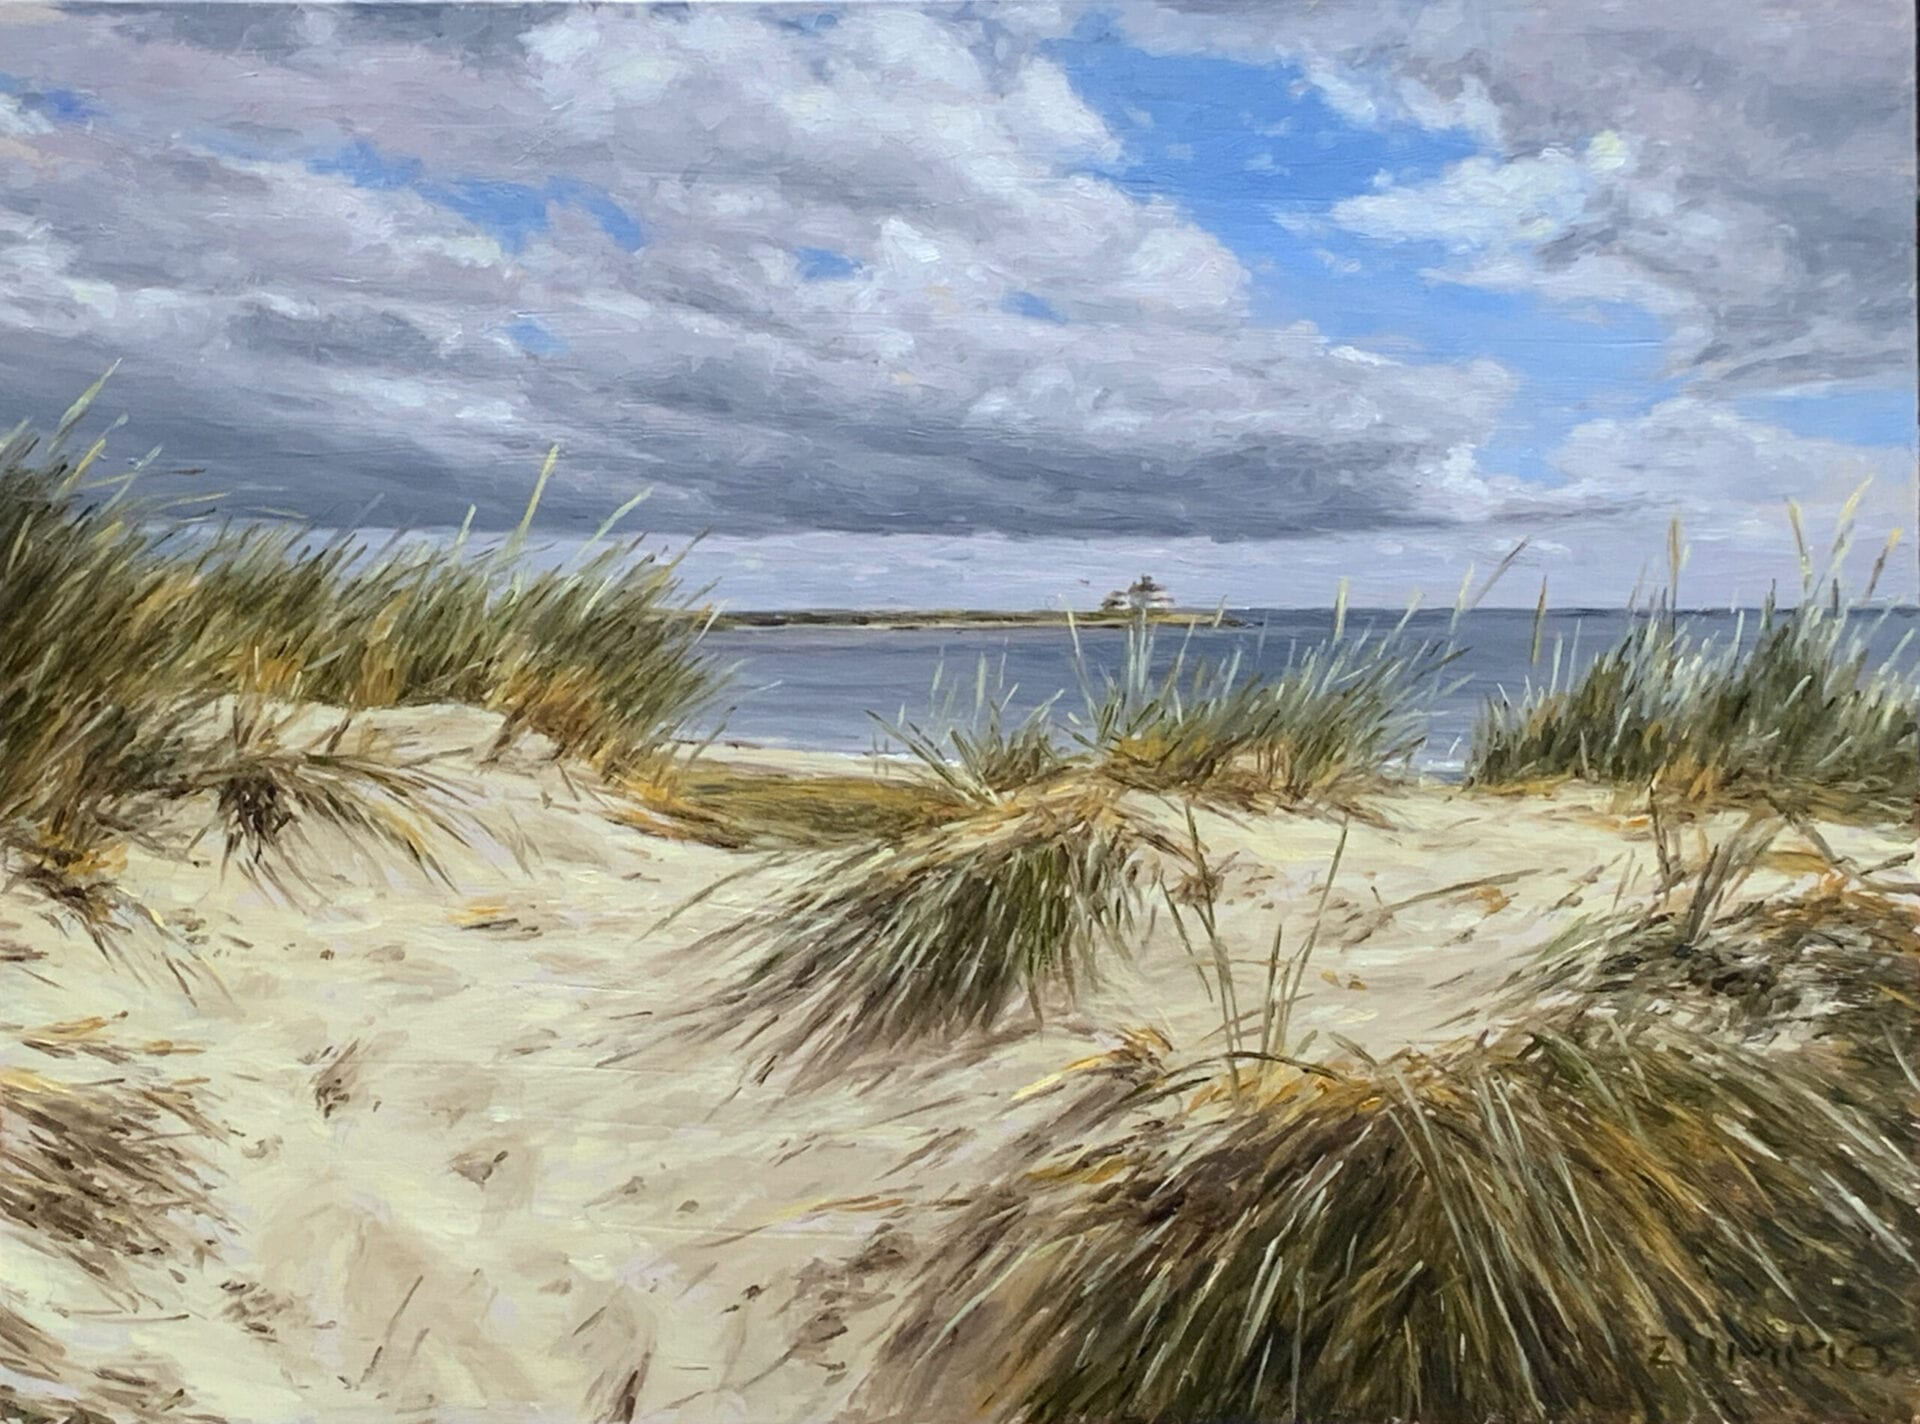 Lori Zummo - Lighthouse from the Dunes